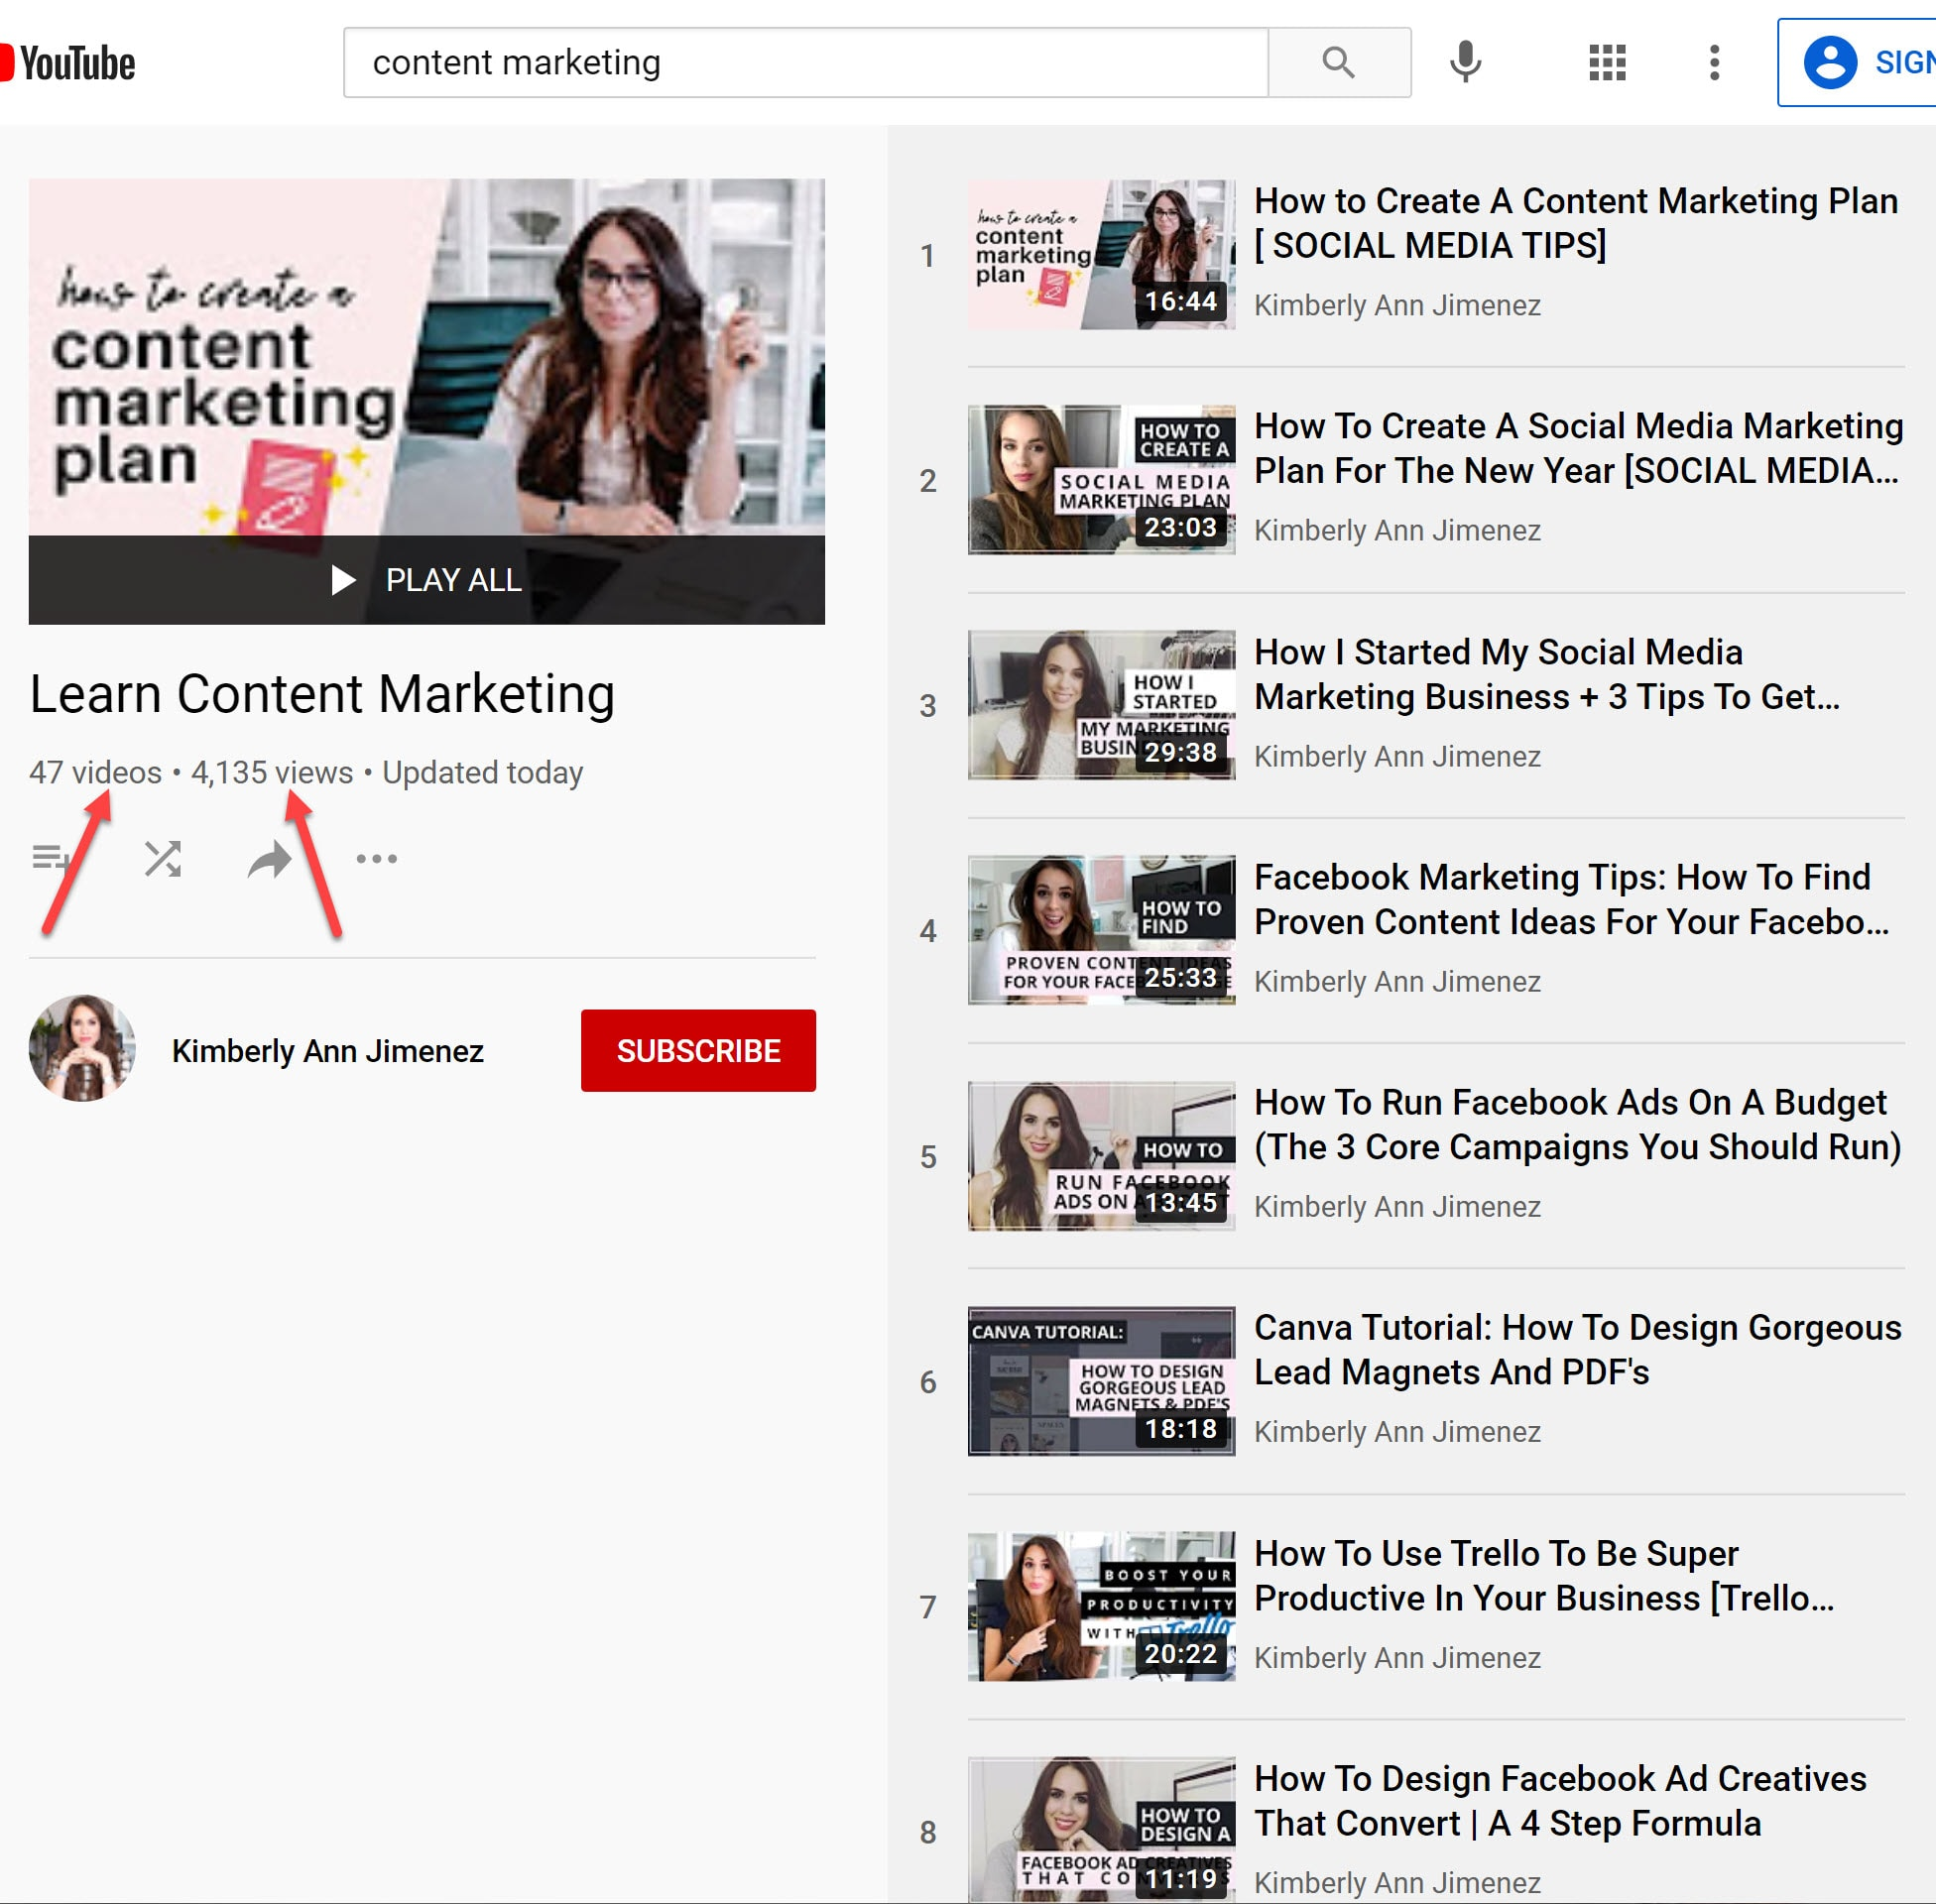 Complete Content marketing playlist